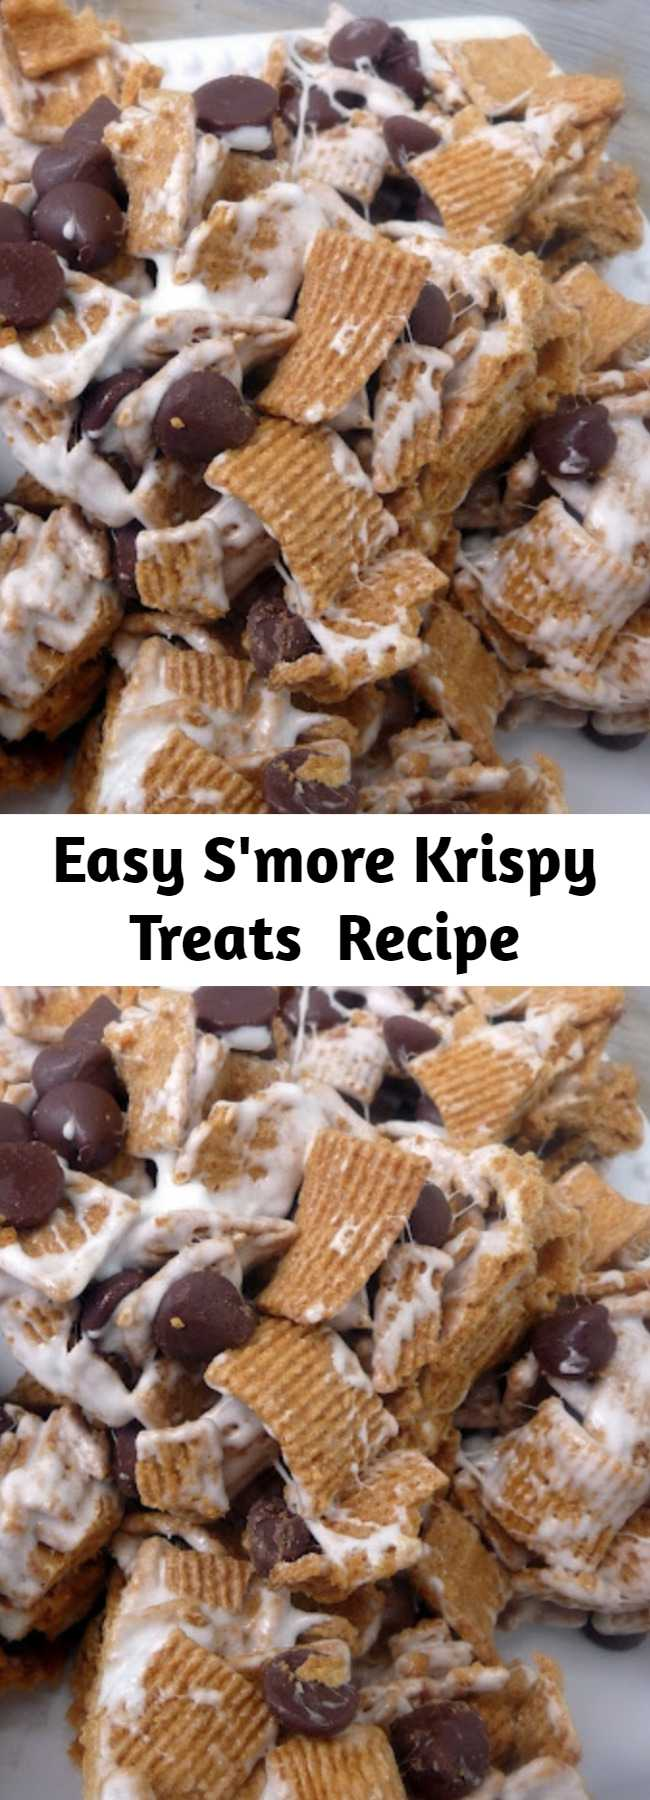 Easy S'more Krispy Treats  Recipe - These S'mores bars are incredible! So easy to make and completely delicious! These are SO freaking good!!